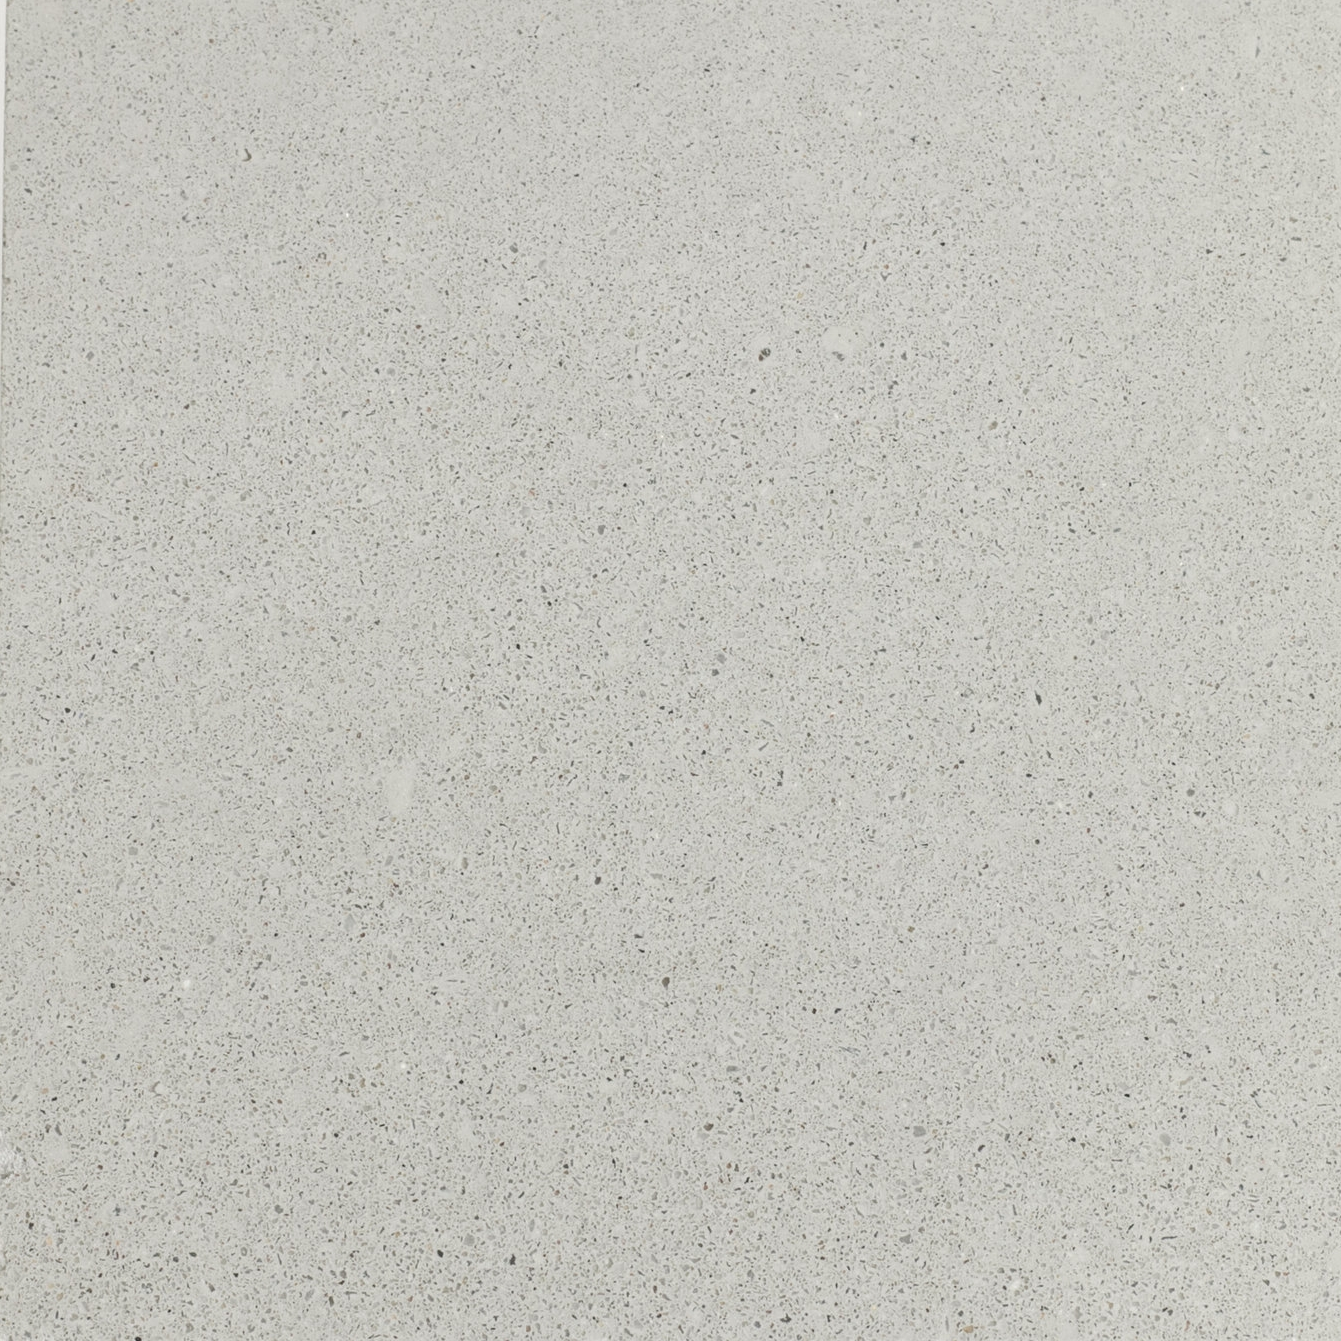 Get Real Surfaces — Get Real Surfaces Concrete Finishes